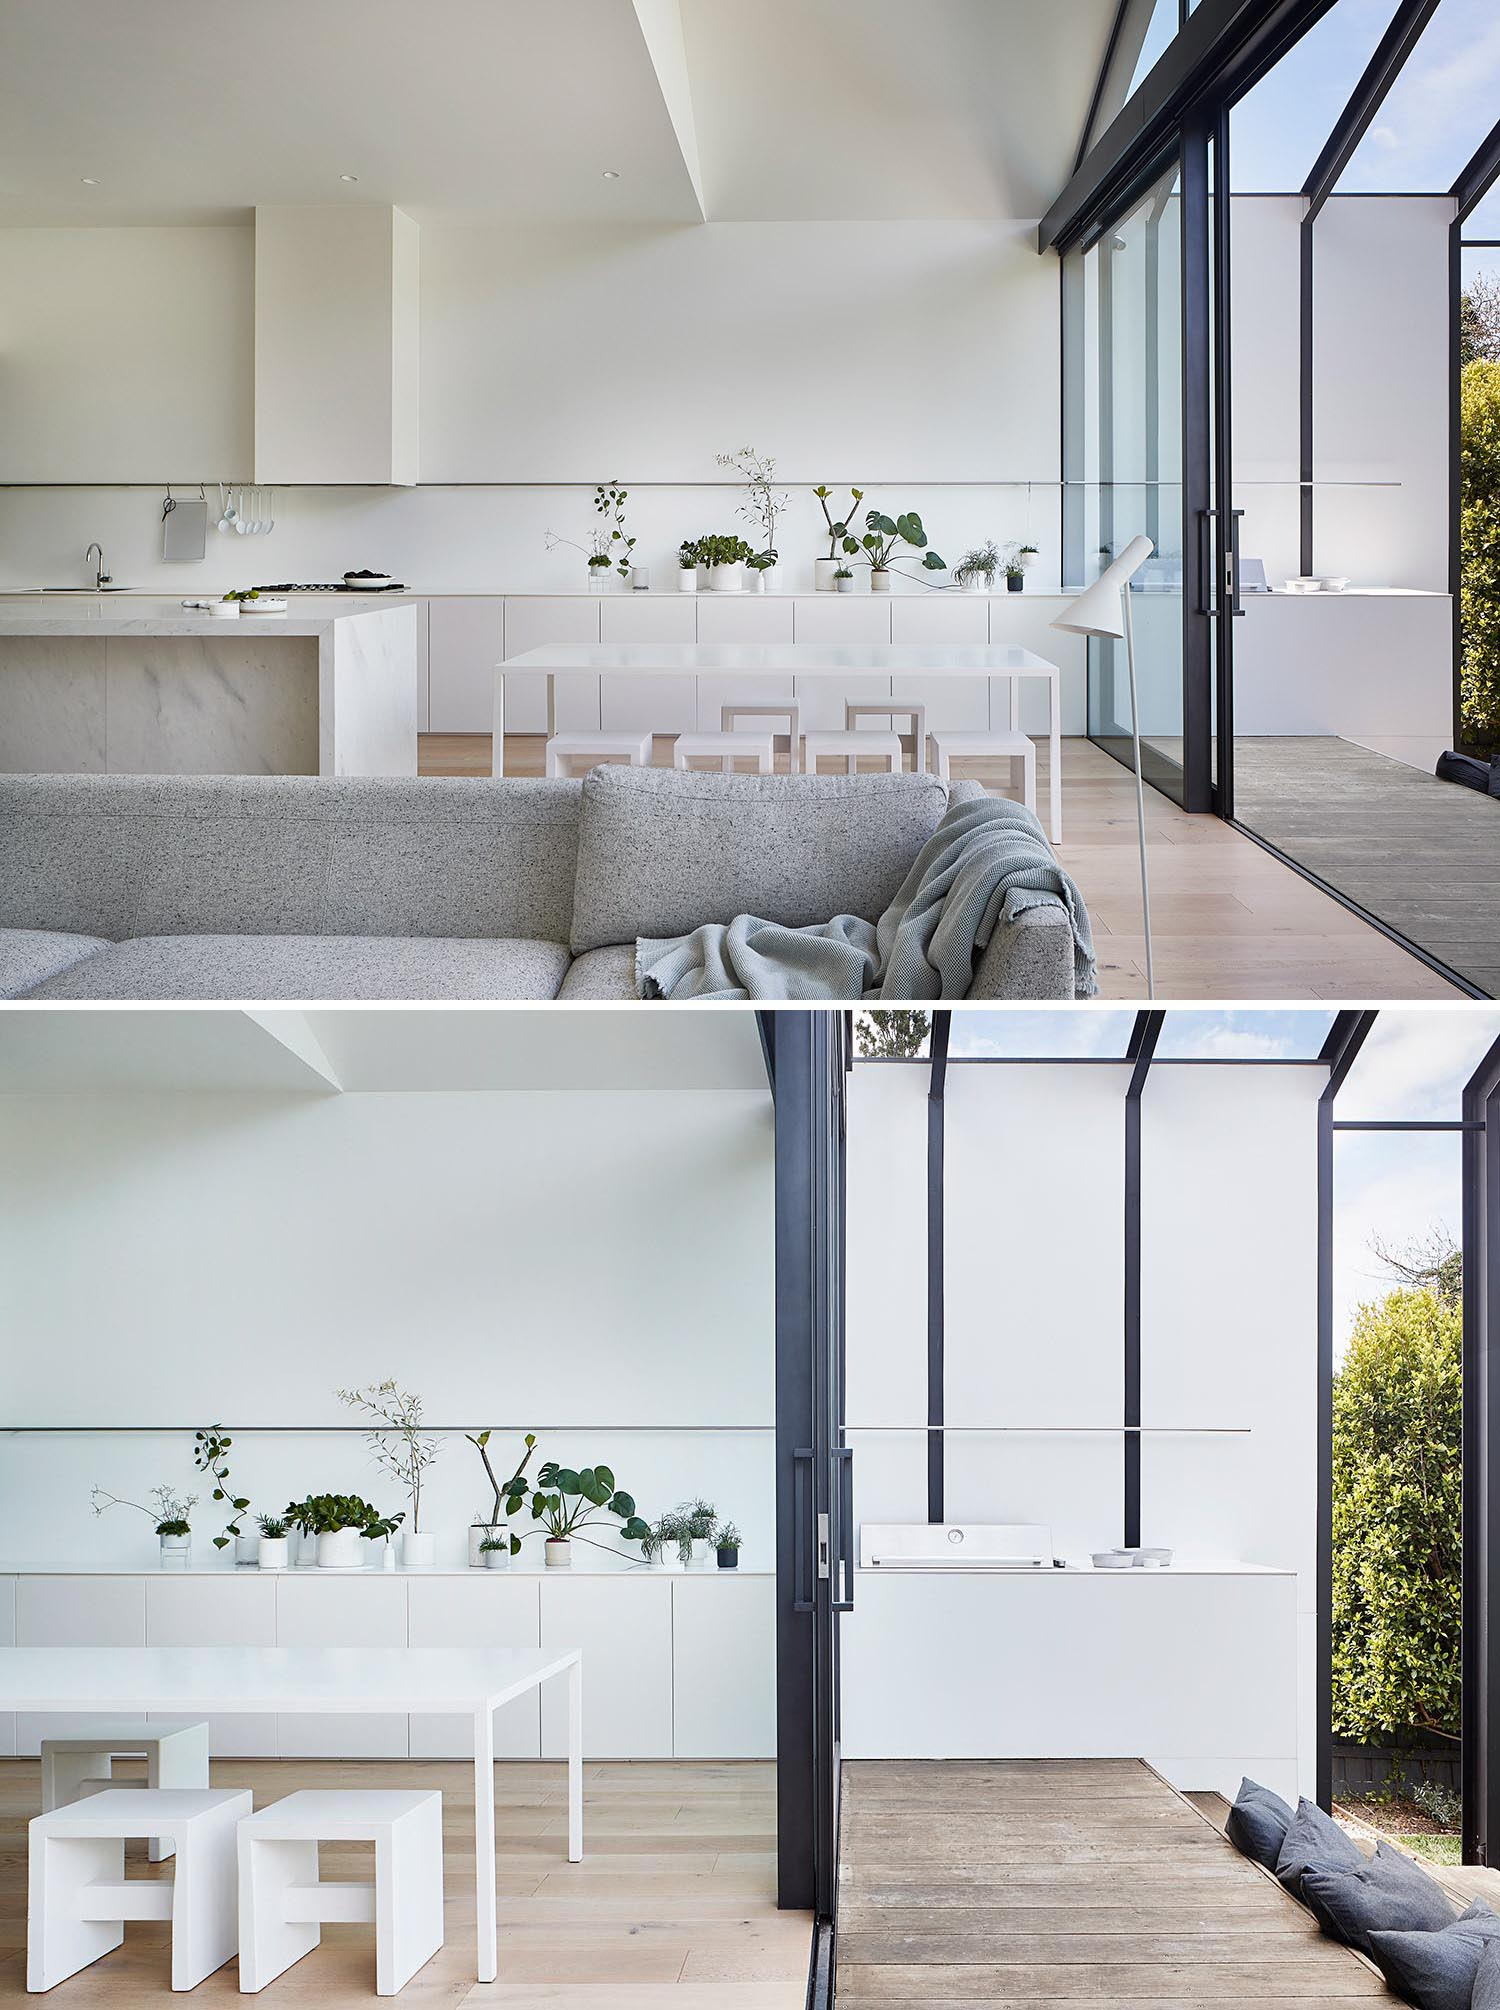 A modern home extension with a white kitchen, a large sliding glass door, and an outdoor bbq area.